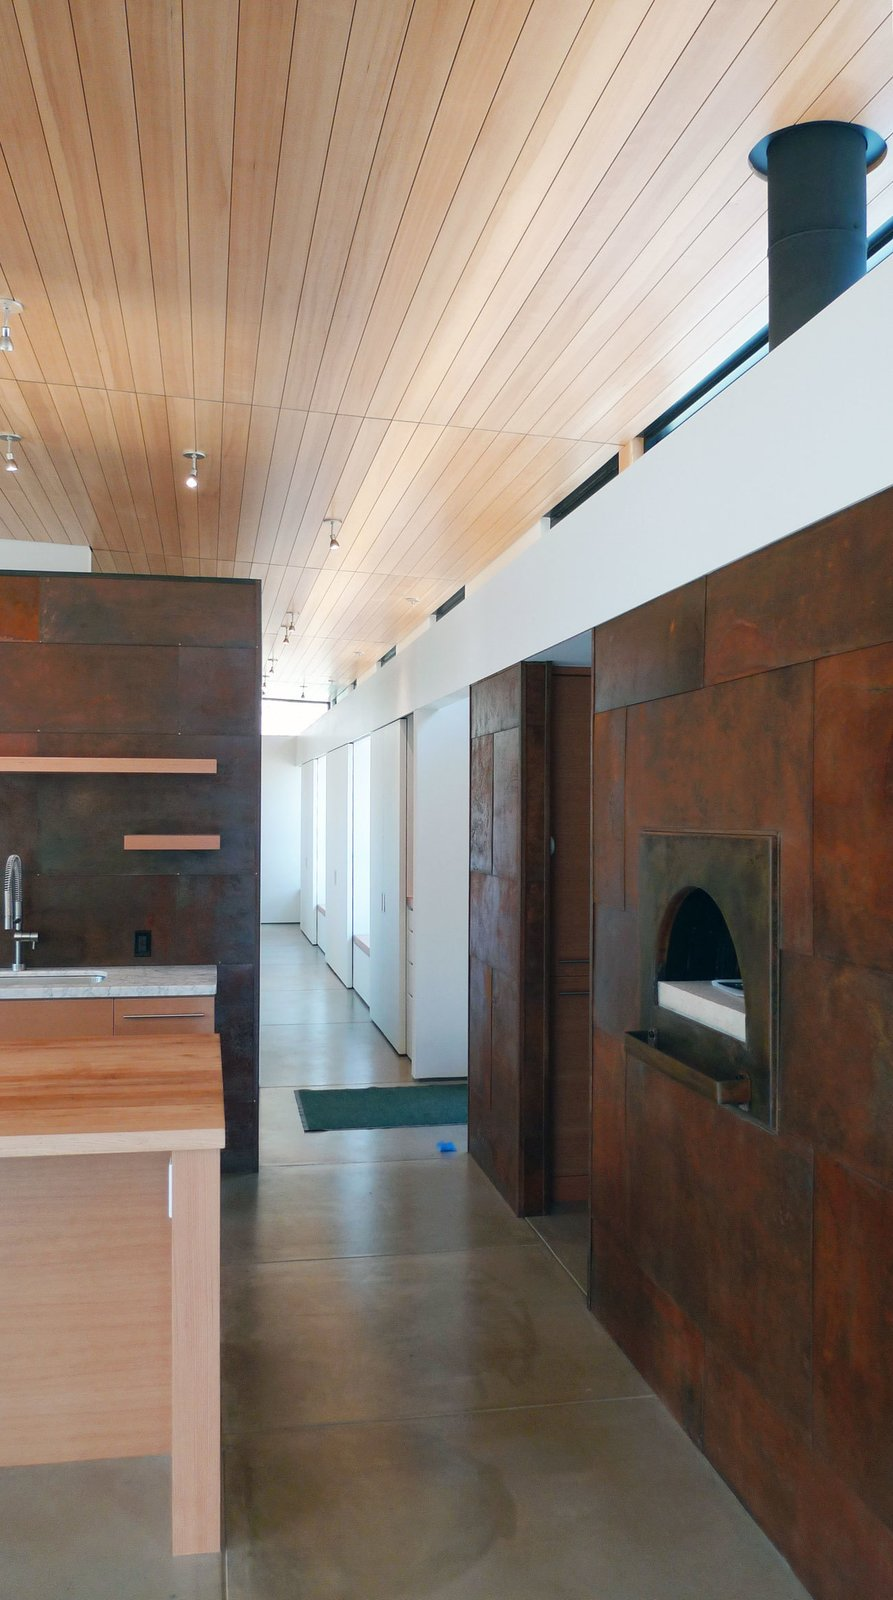 """Kitchen A pizza oven and built-in storage spaces line a hallway, saving space. """"6,000-square-foot houses for single families don't make sense ecologically—or in my opinion, functionally,"""" says Hirsh. """"The house is a nice size for our life—plenty large, but not unwieldy.""""  Photo by Ron Johnson.  Photo 6 of 10 in A Serene, Sustainable Home in Colorado from Serene, Sustainable Home in Colorado"""